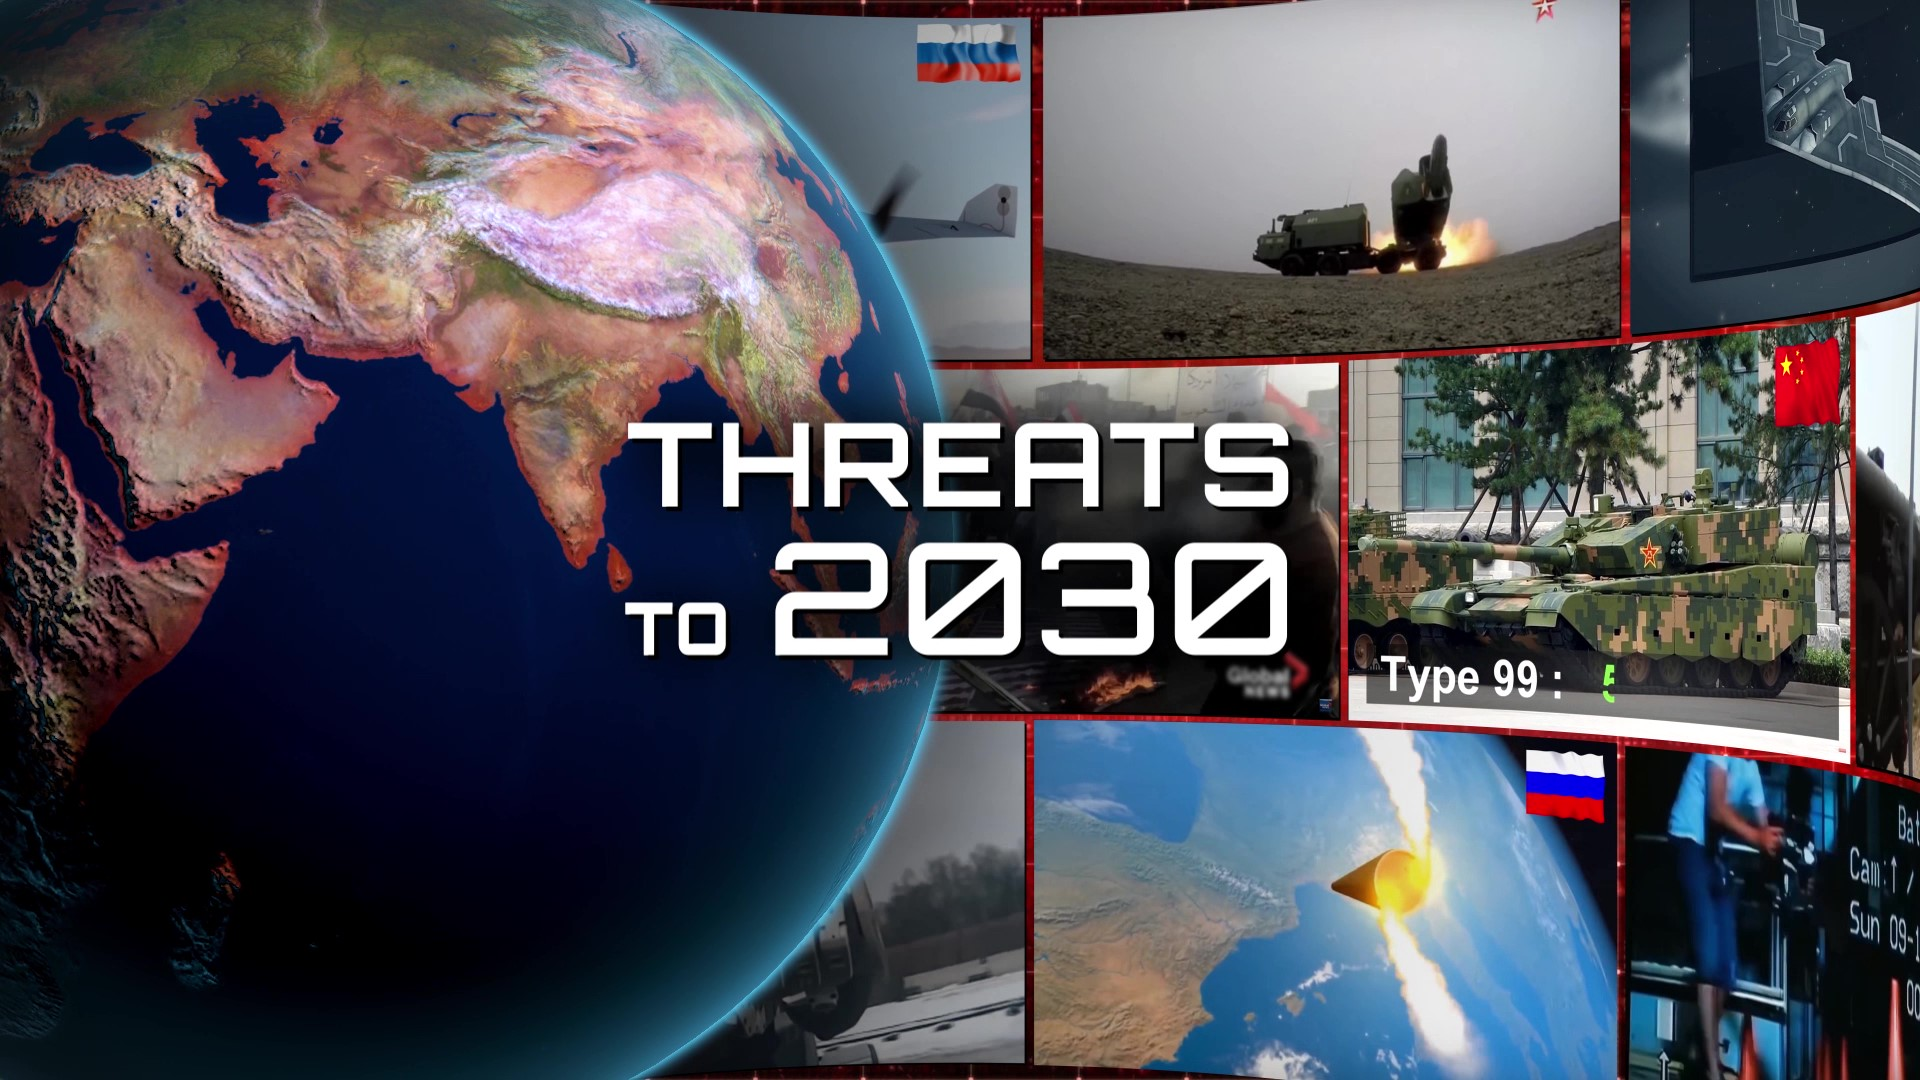 You are currently viewing TRADOC G2 Threats to 2030 Visualization